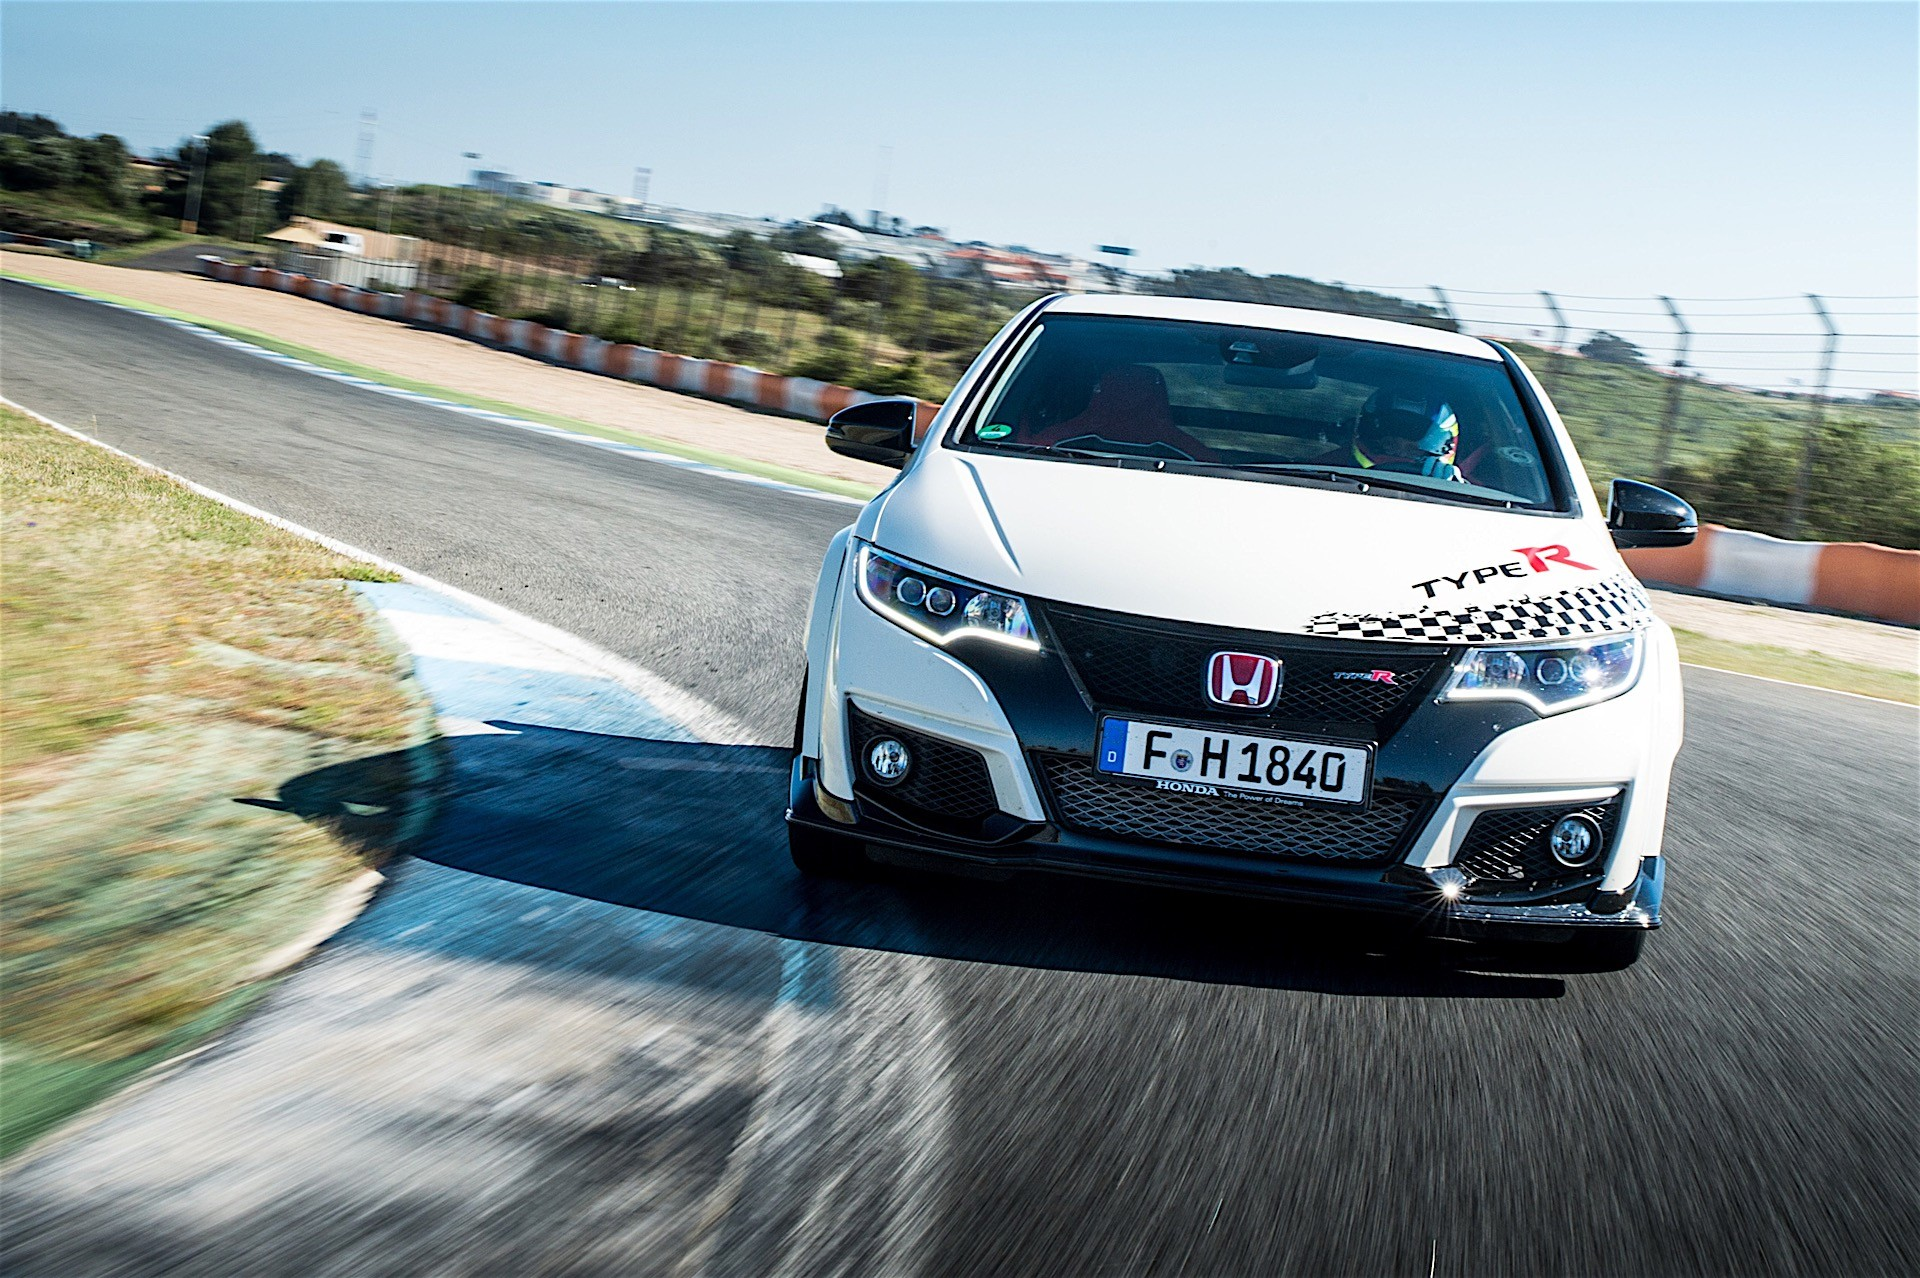 honda civic type r demolishes times at five legendary circuits in europe autoevolution. Black Bedroom Furniture Sets. Home Design Ideas